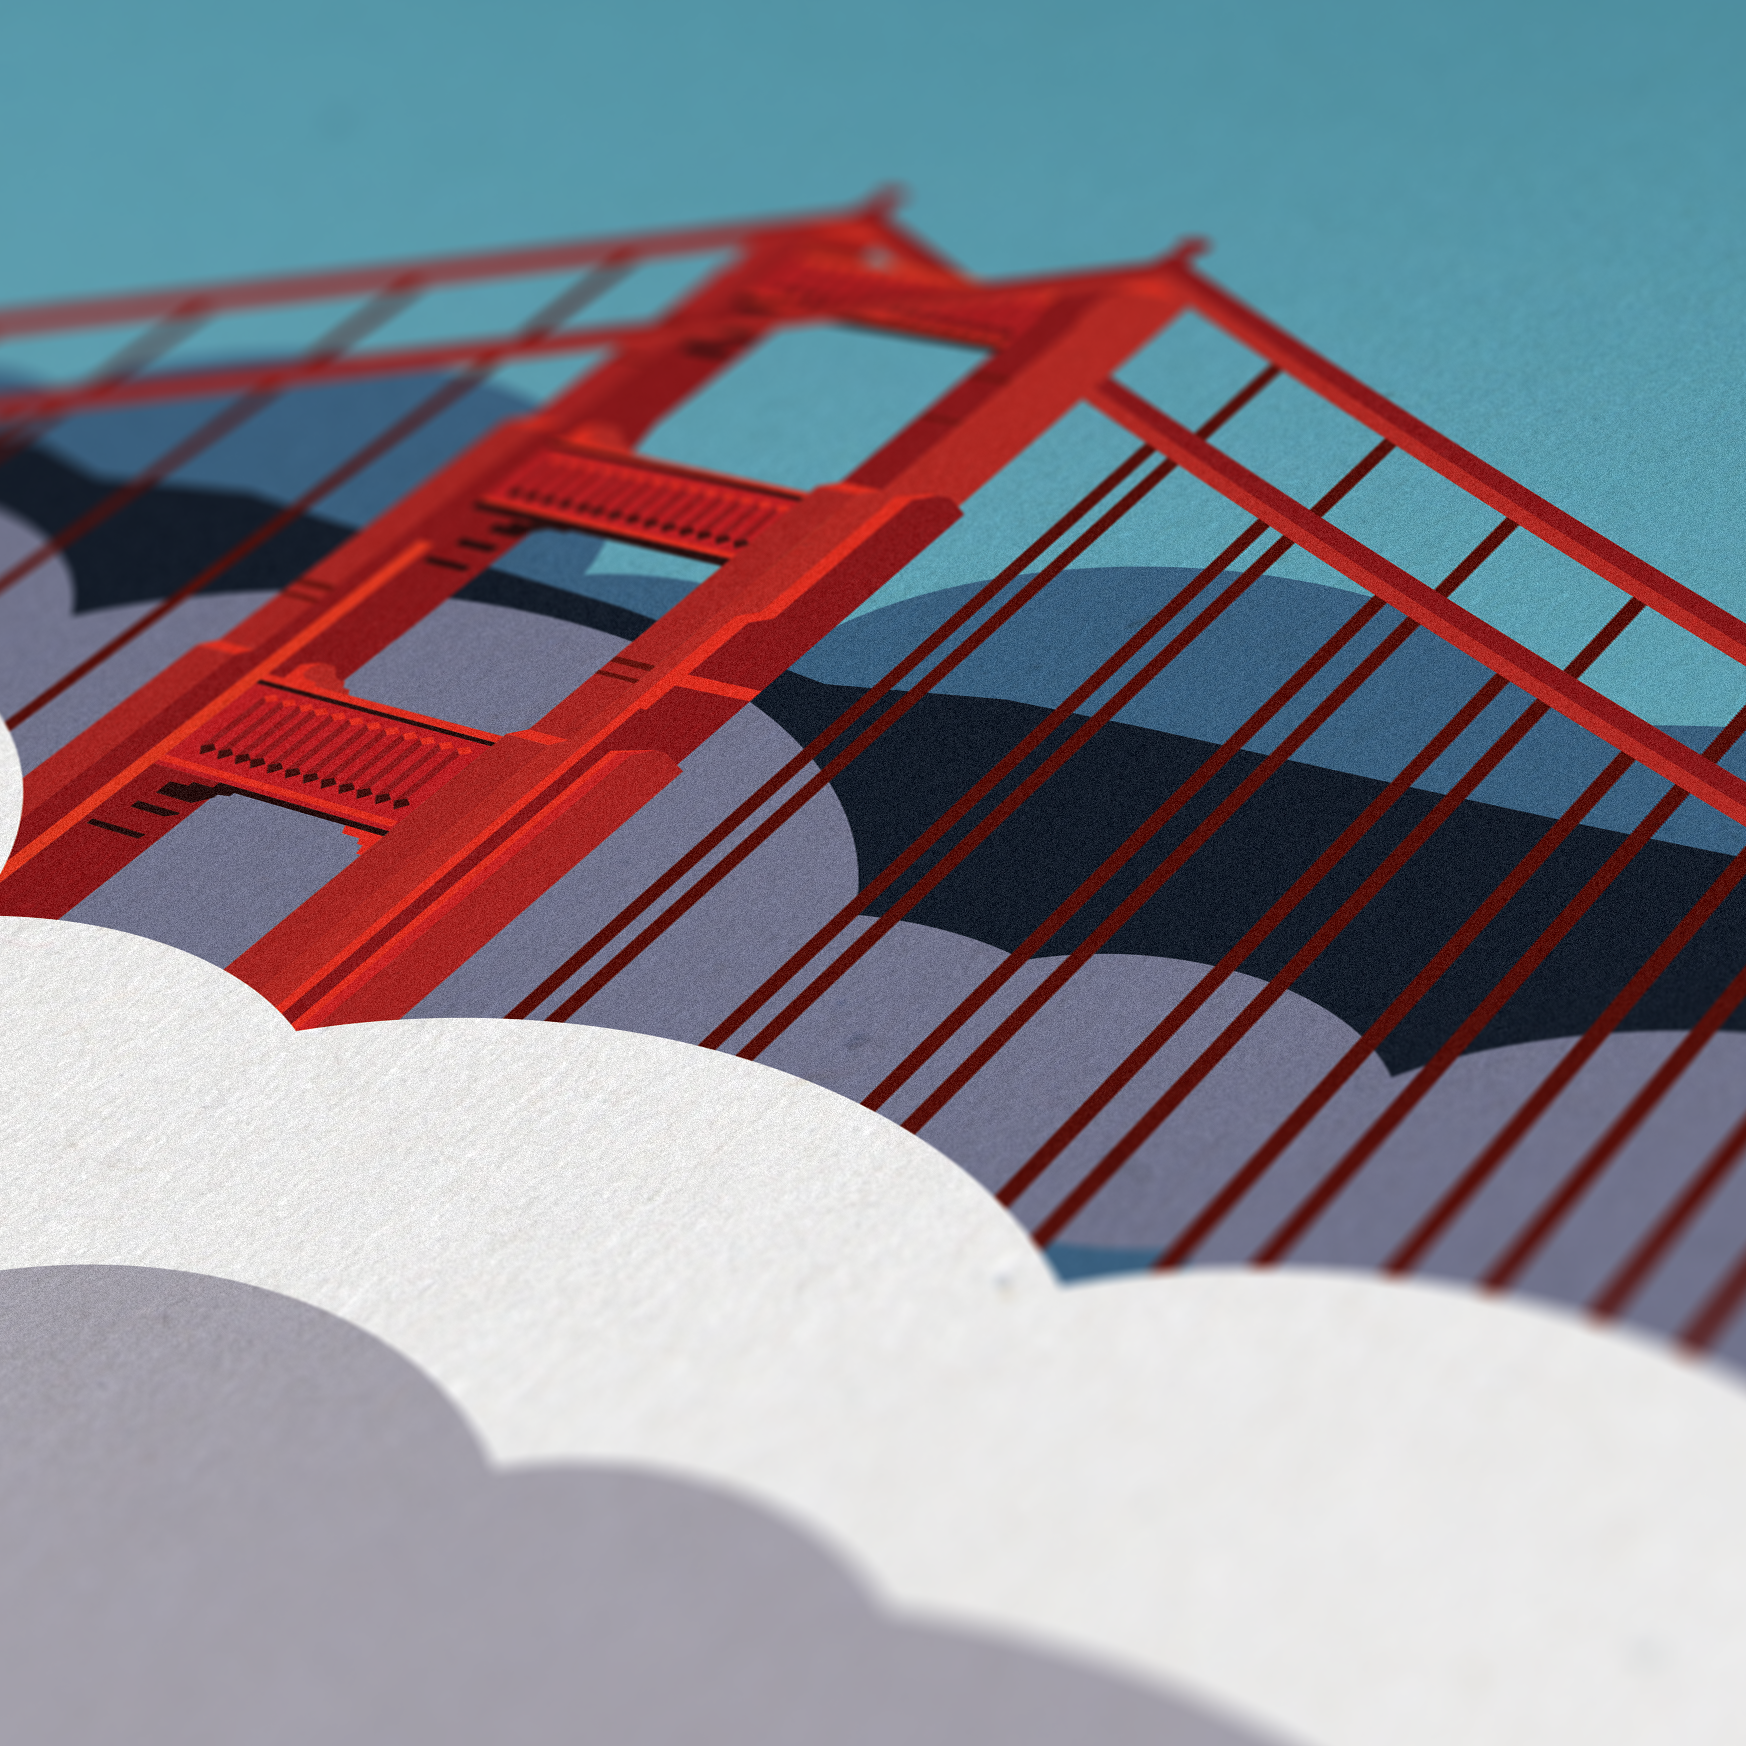 GoldenGate_Bridge_v05-DETAIL.png